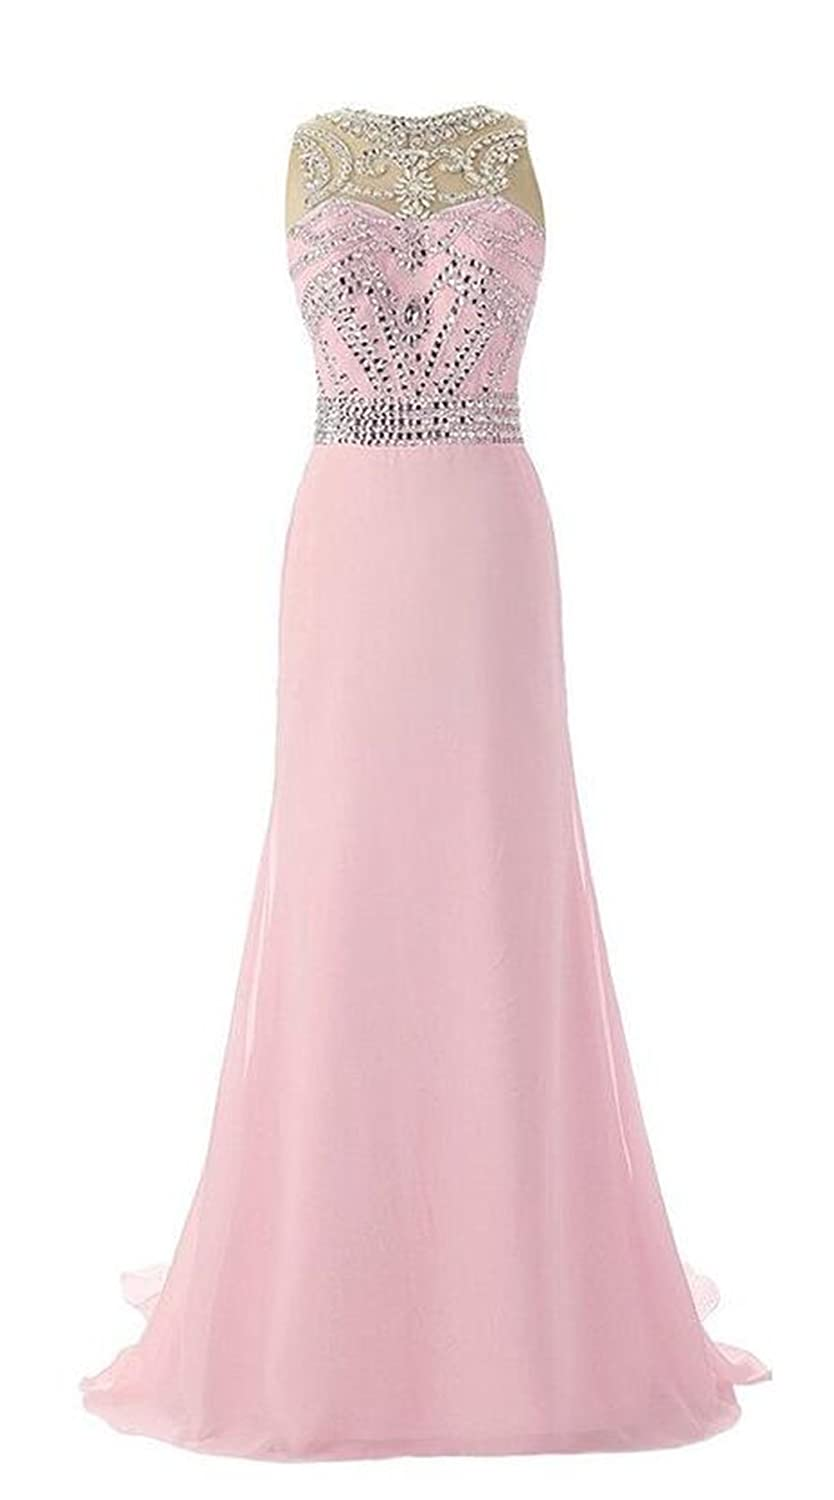 AngelDragon A-Line Rhinestones Tulle Back Evening Gowns Long Prom Dress